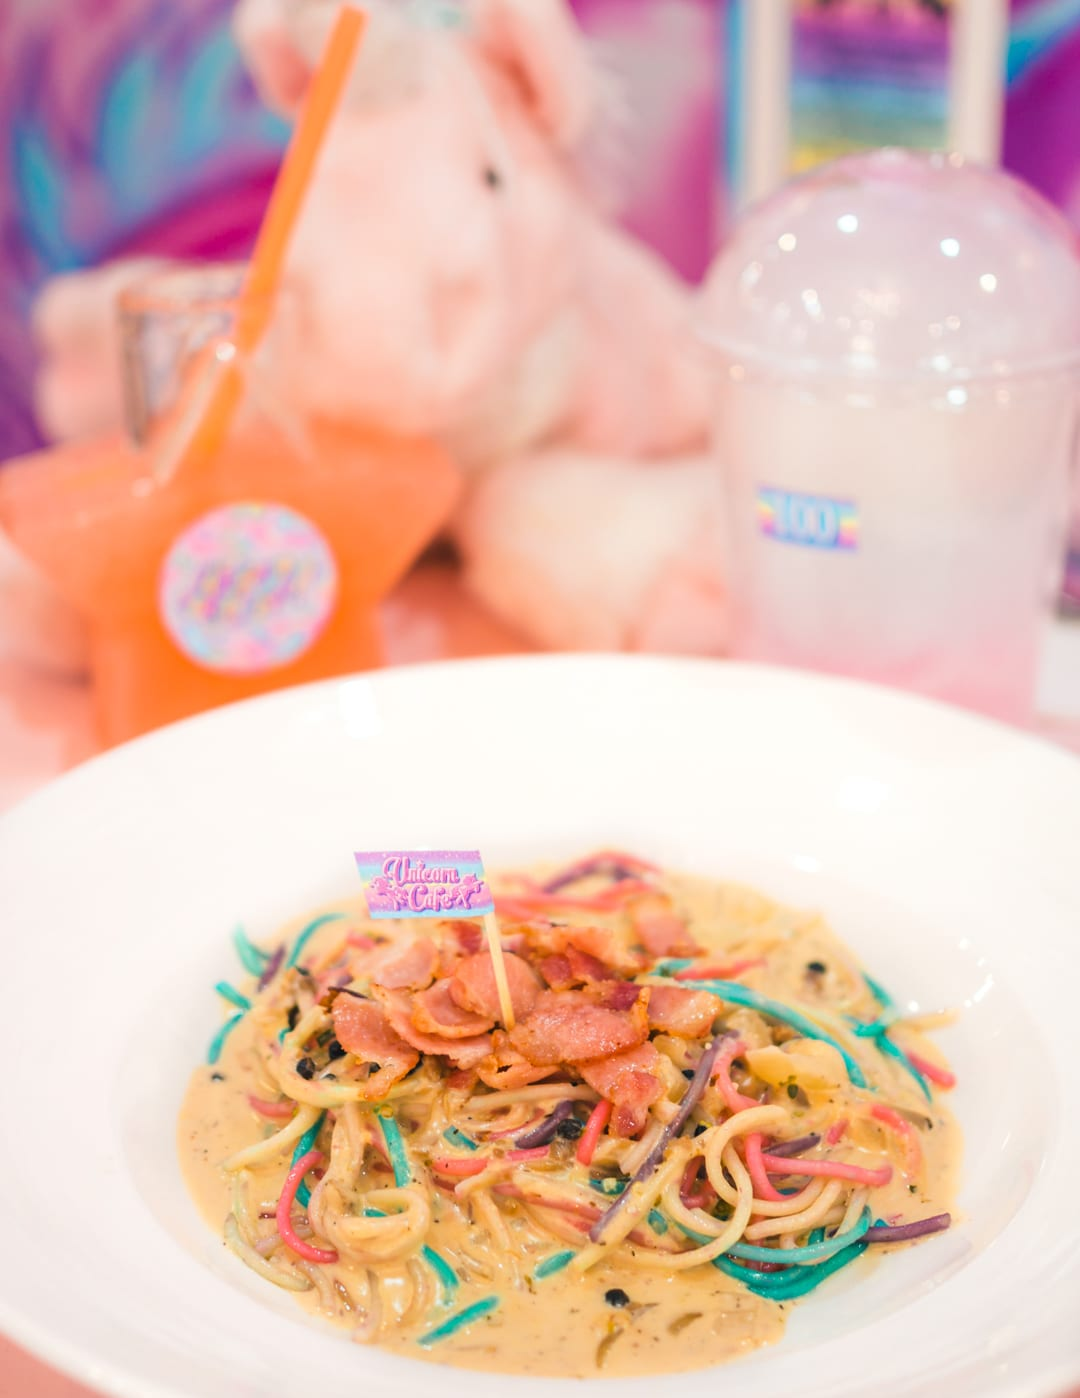 A review of Bangkok's Unicorn Café – Is it worth the hype?